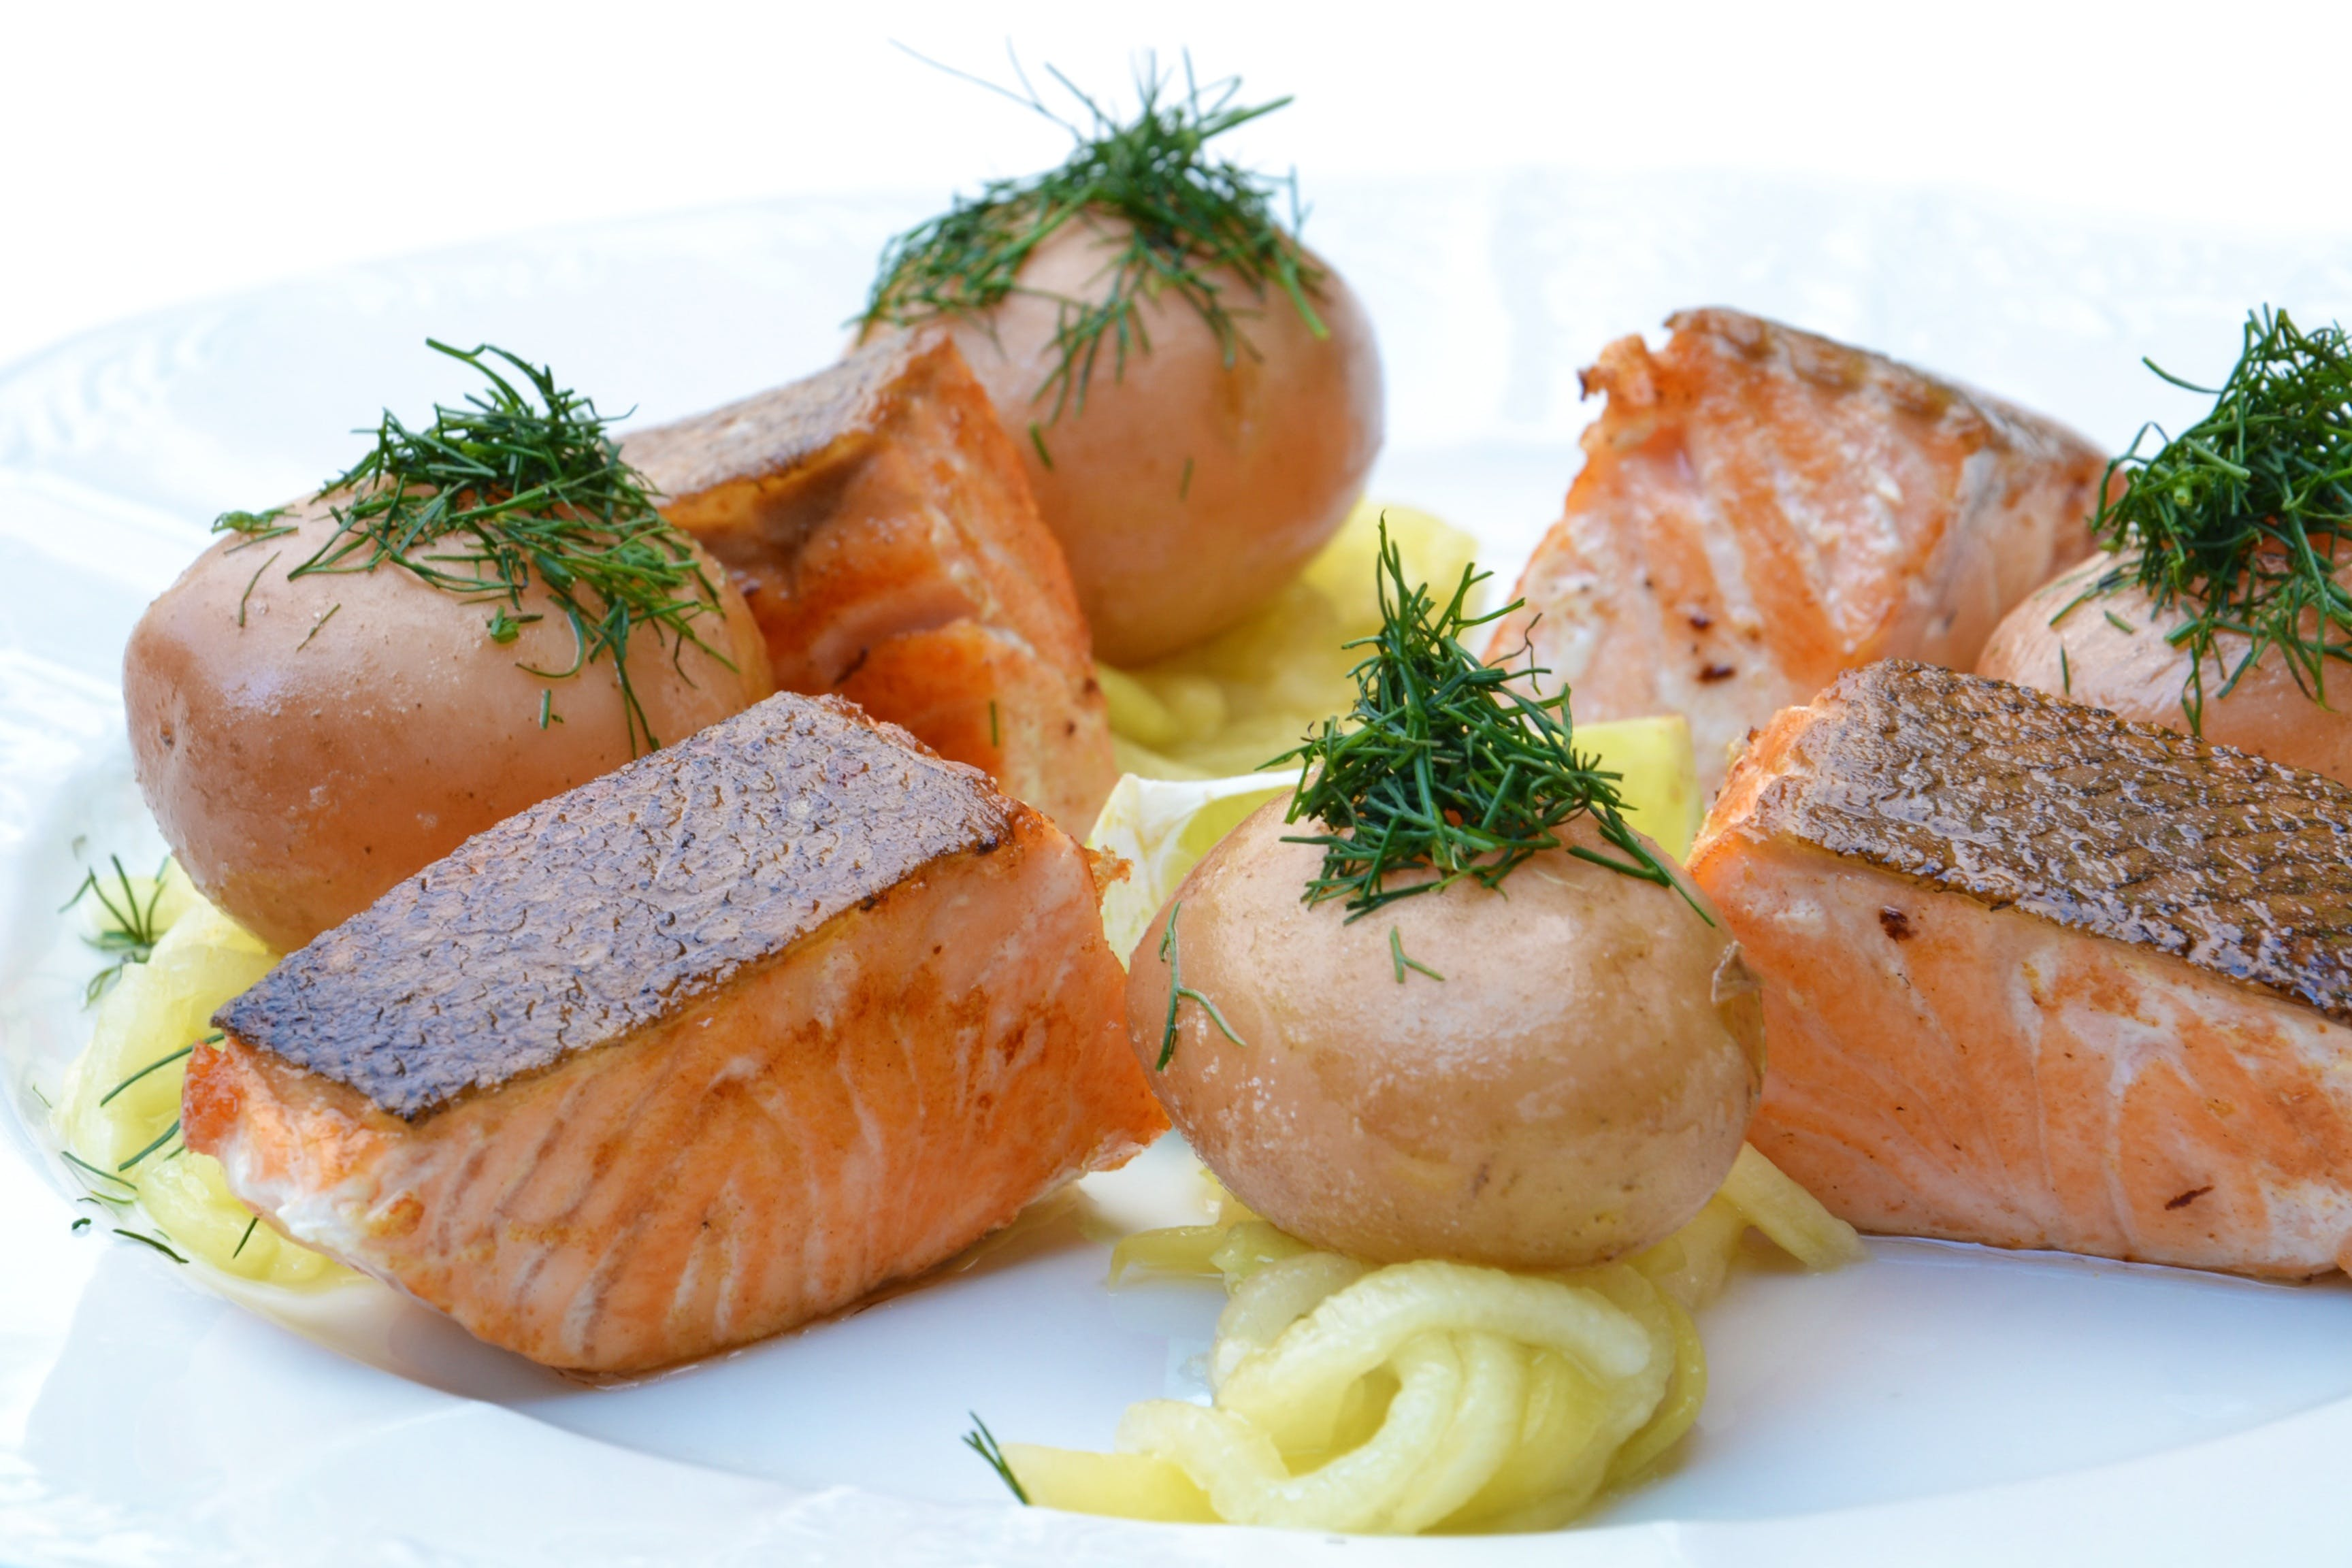 Cooked Fish on Plate